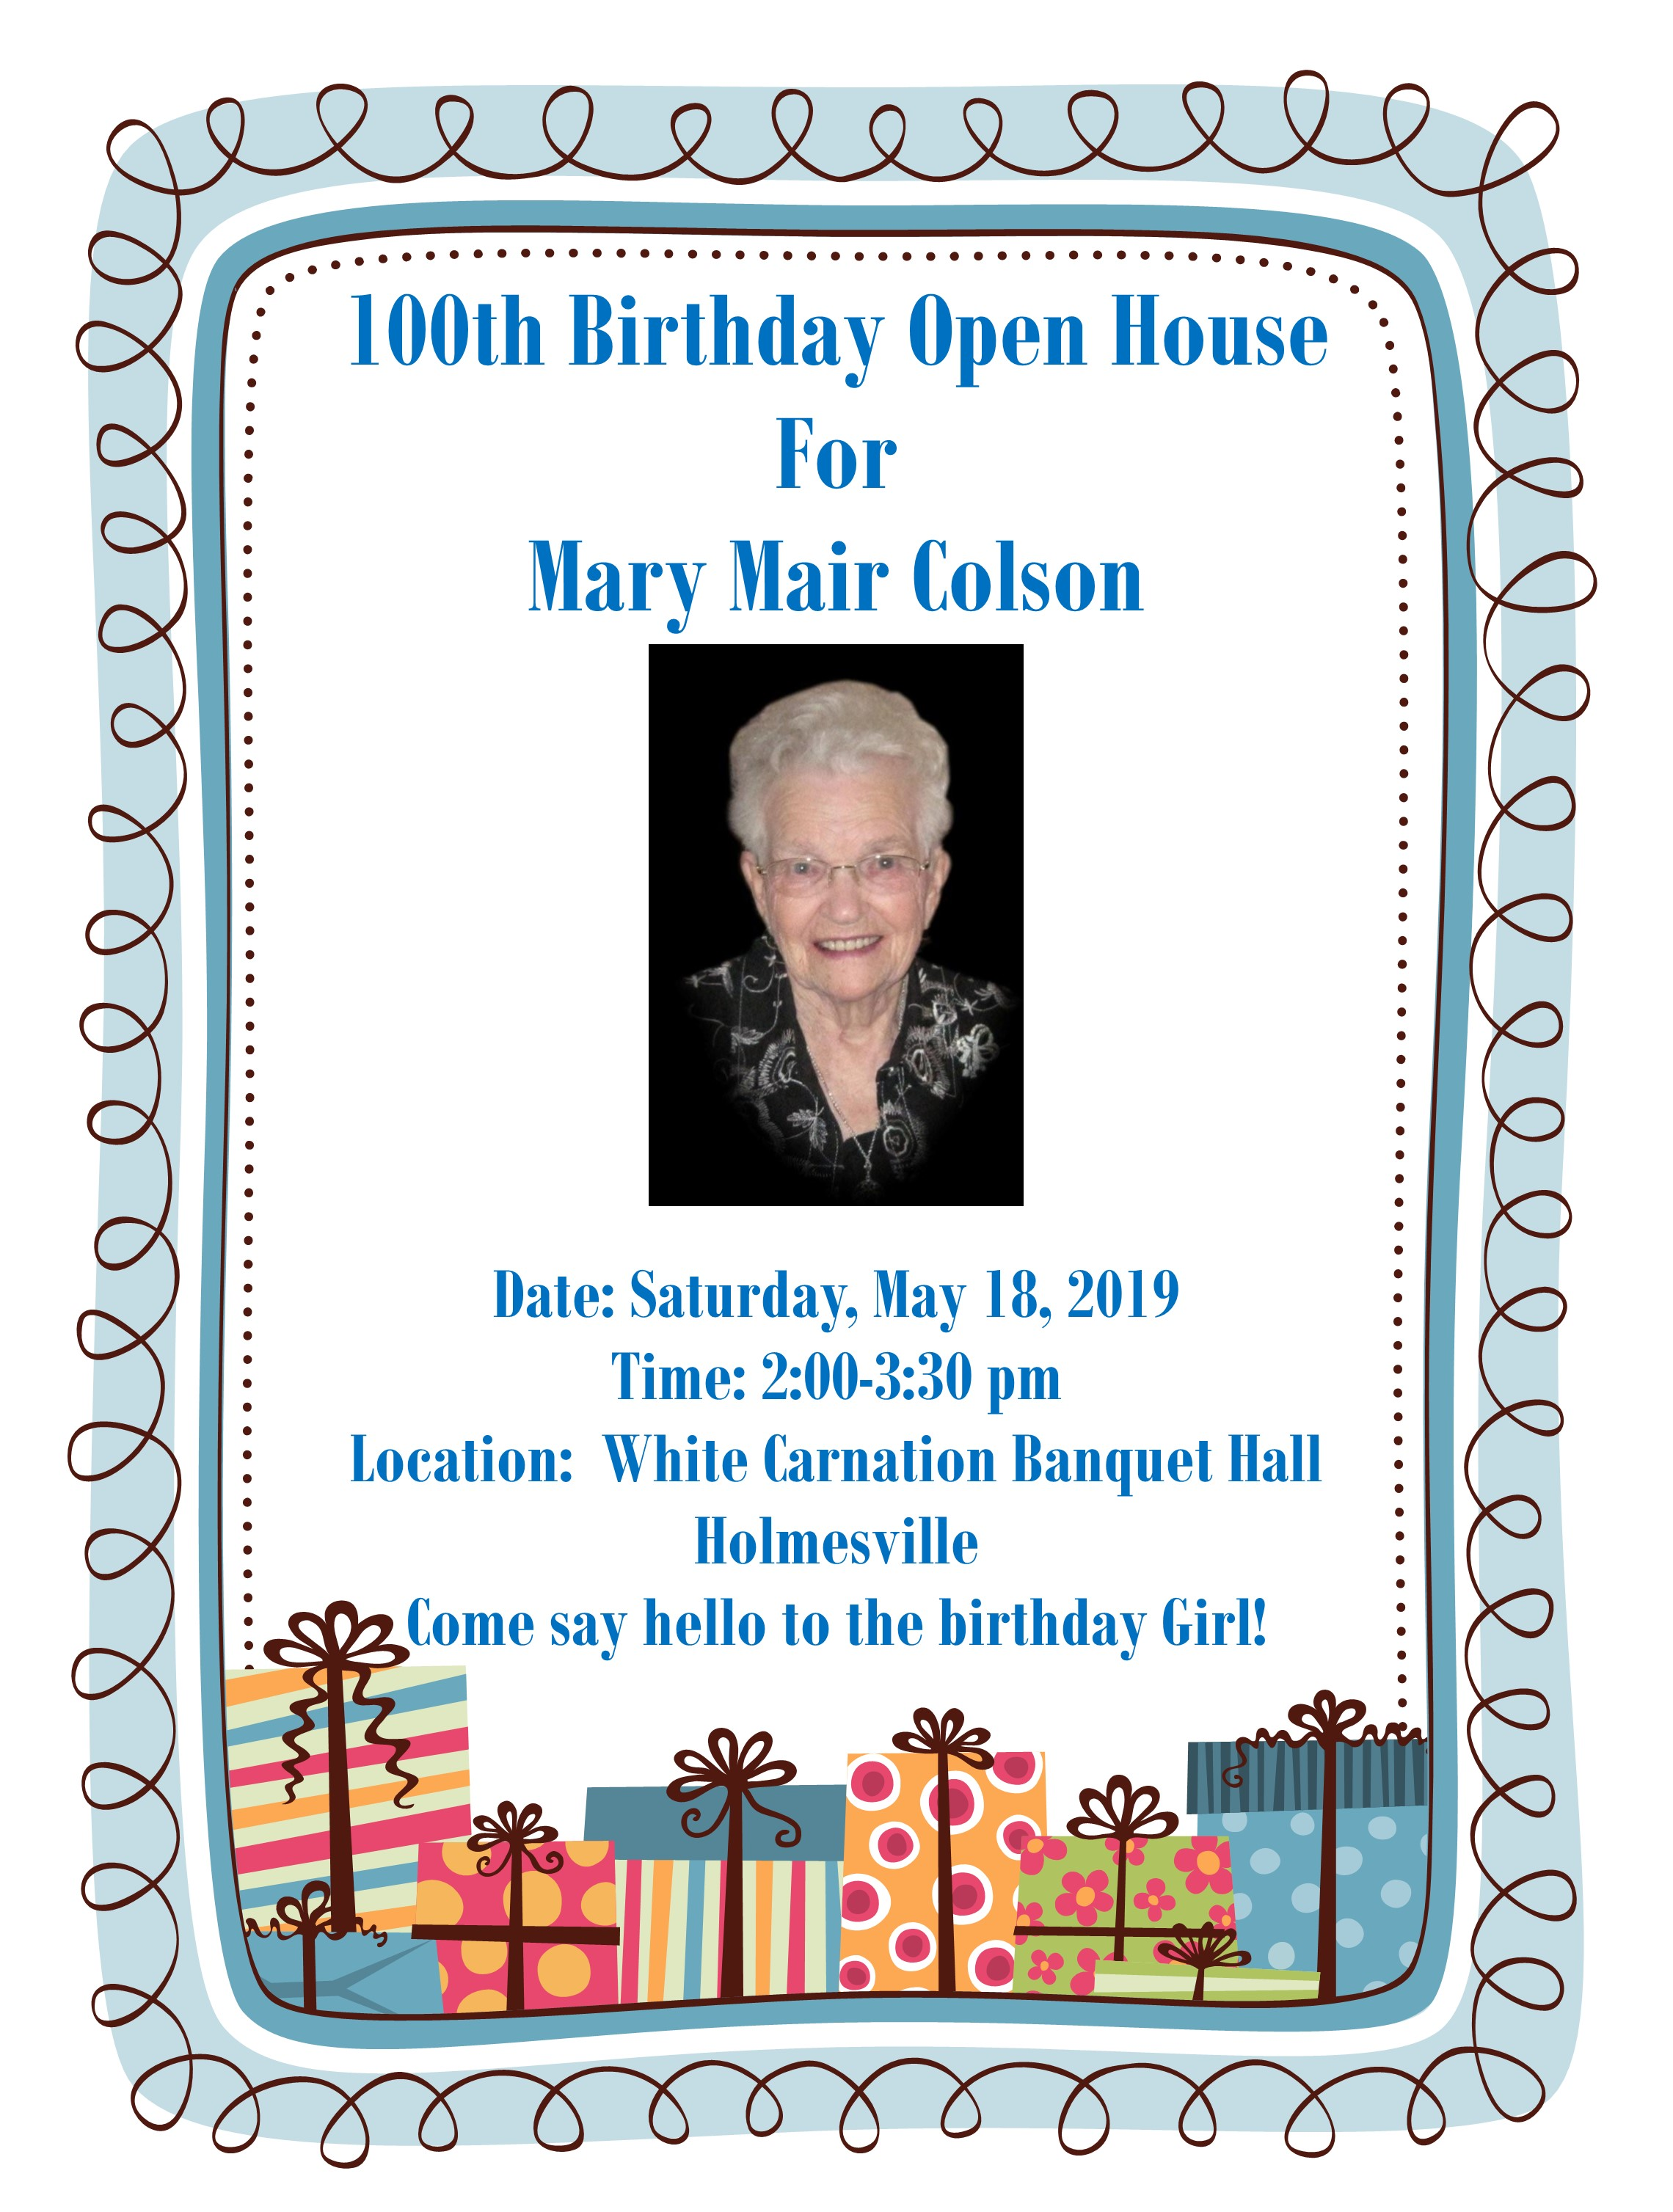 - Help Mary celebrate this auspicious occasion on Saturday May 18th, 2:00 PM-3:30 PM at the White Carnation Banquet Hall, Holmesville